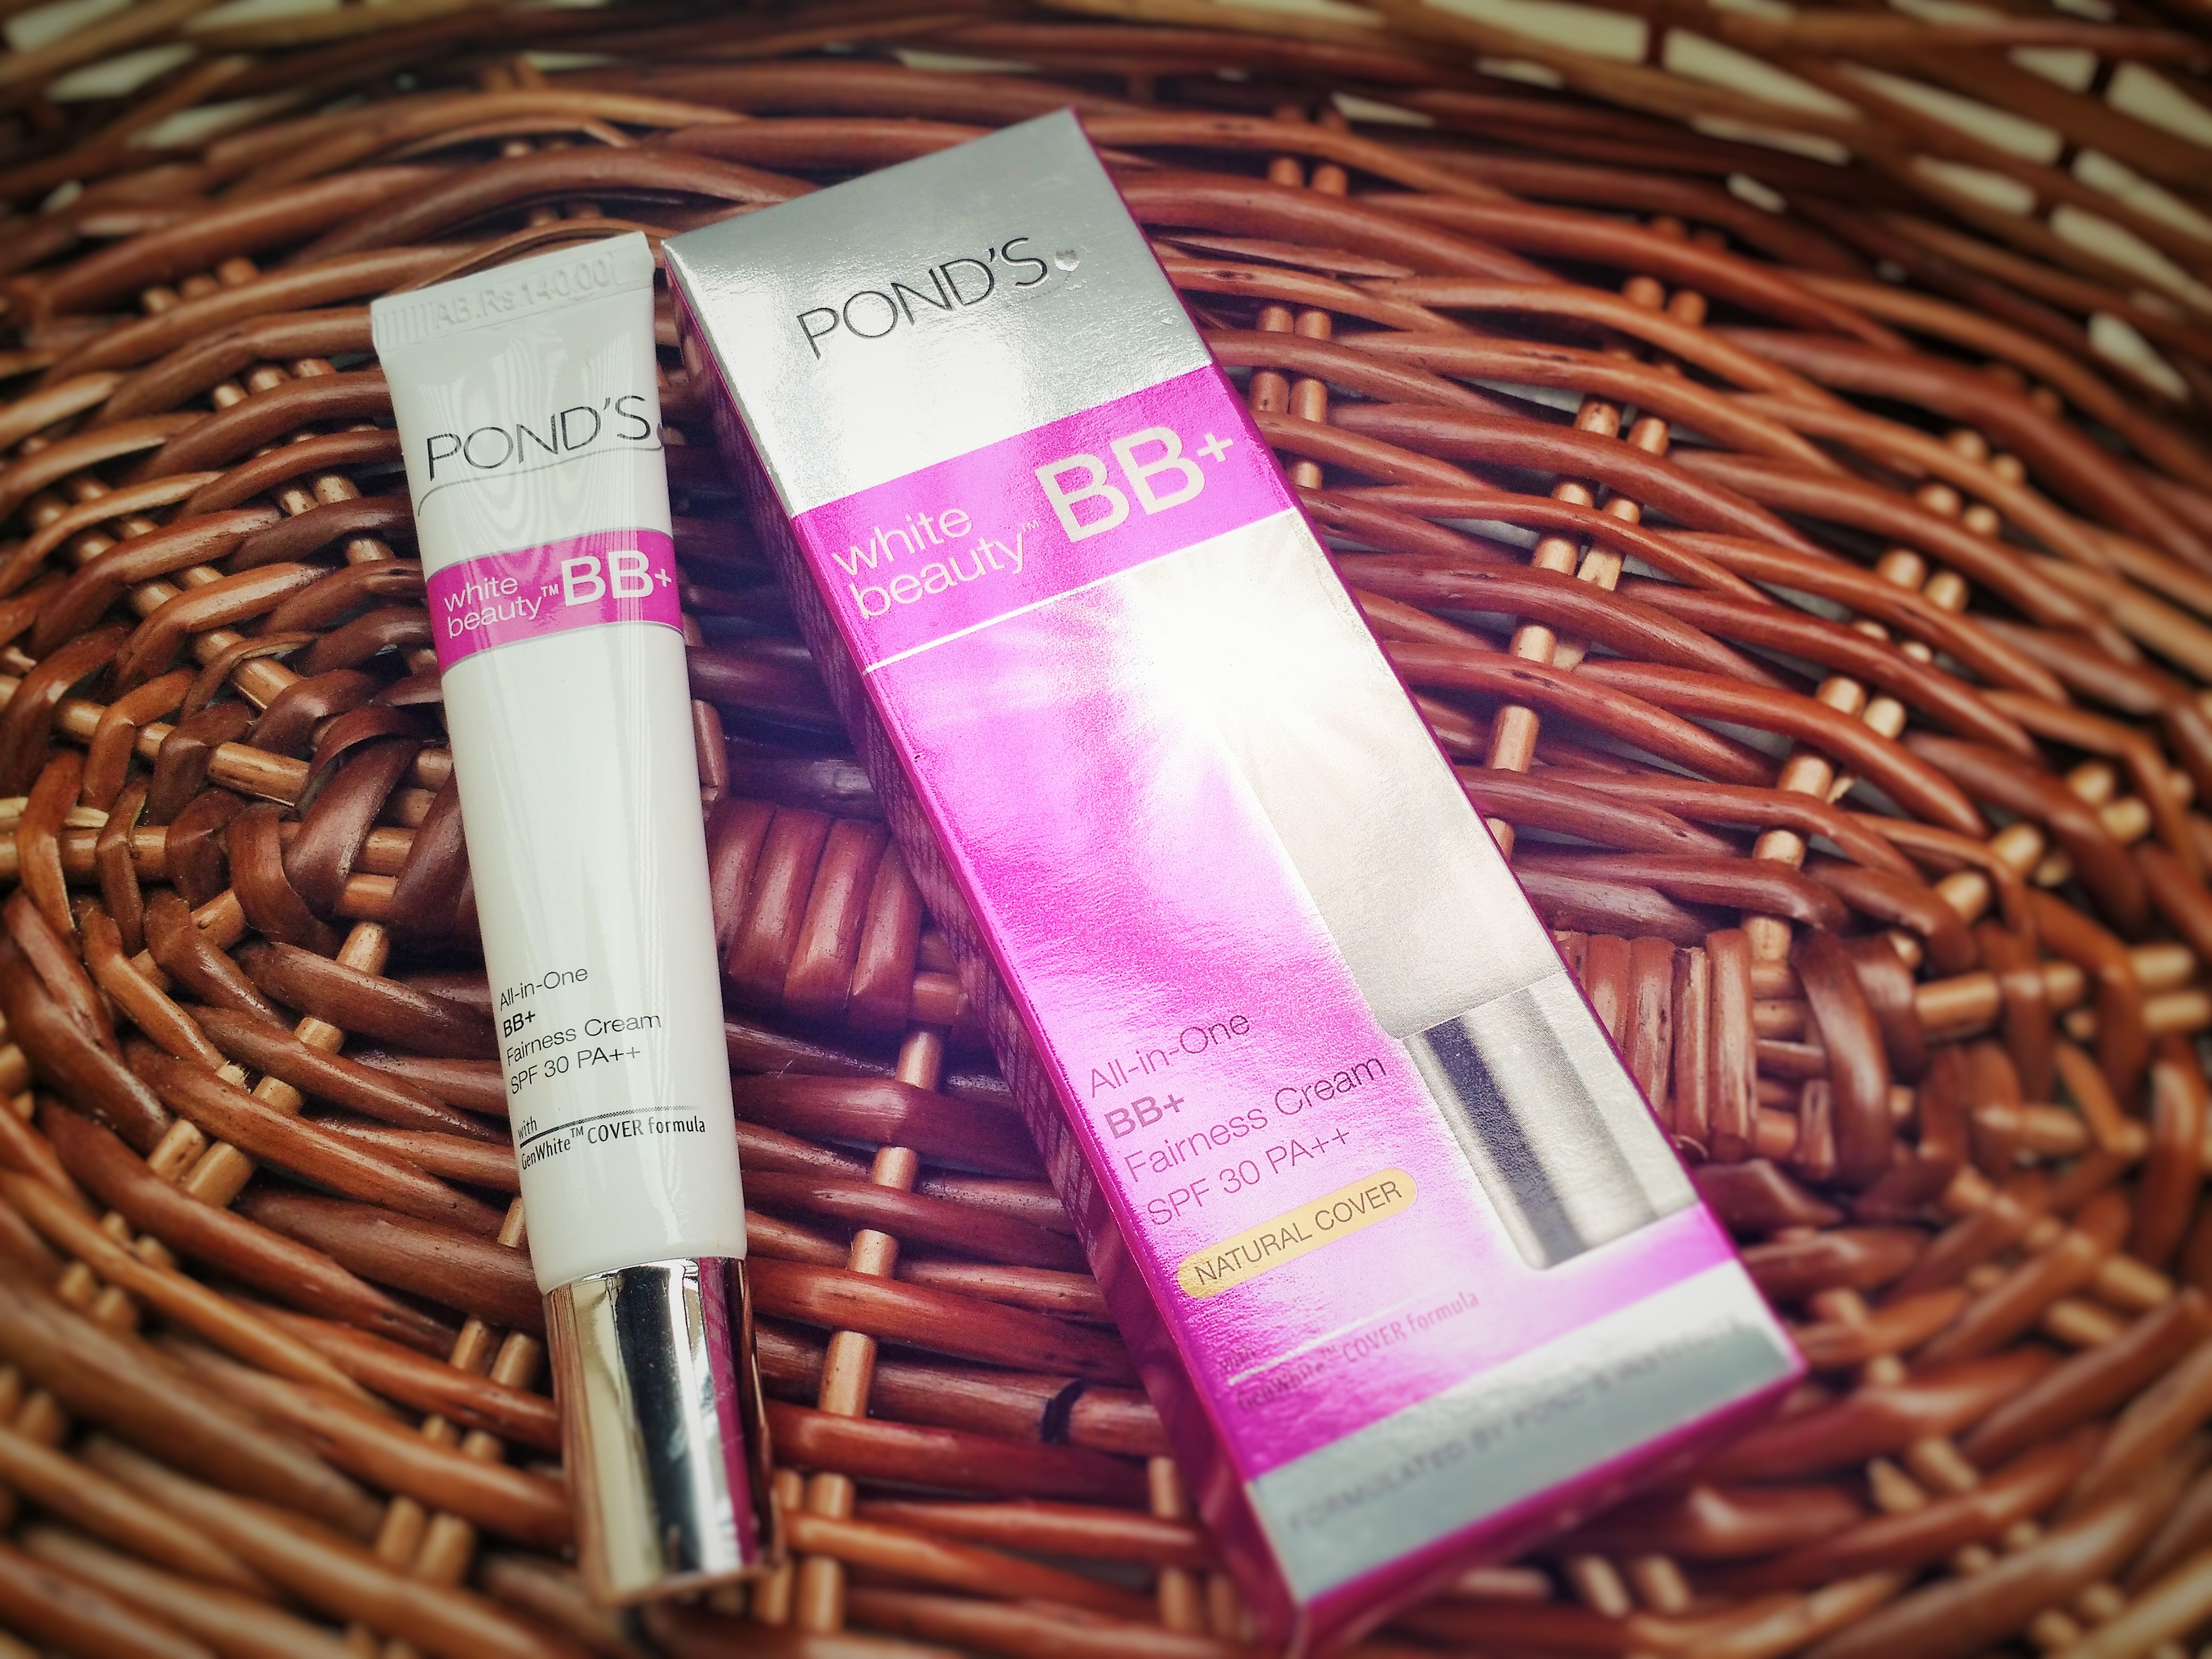 Pond's White Beauty BB+ cream